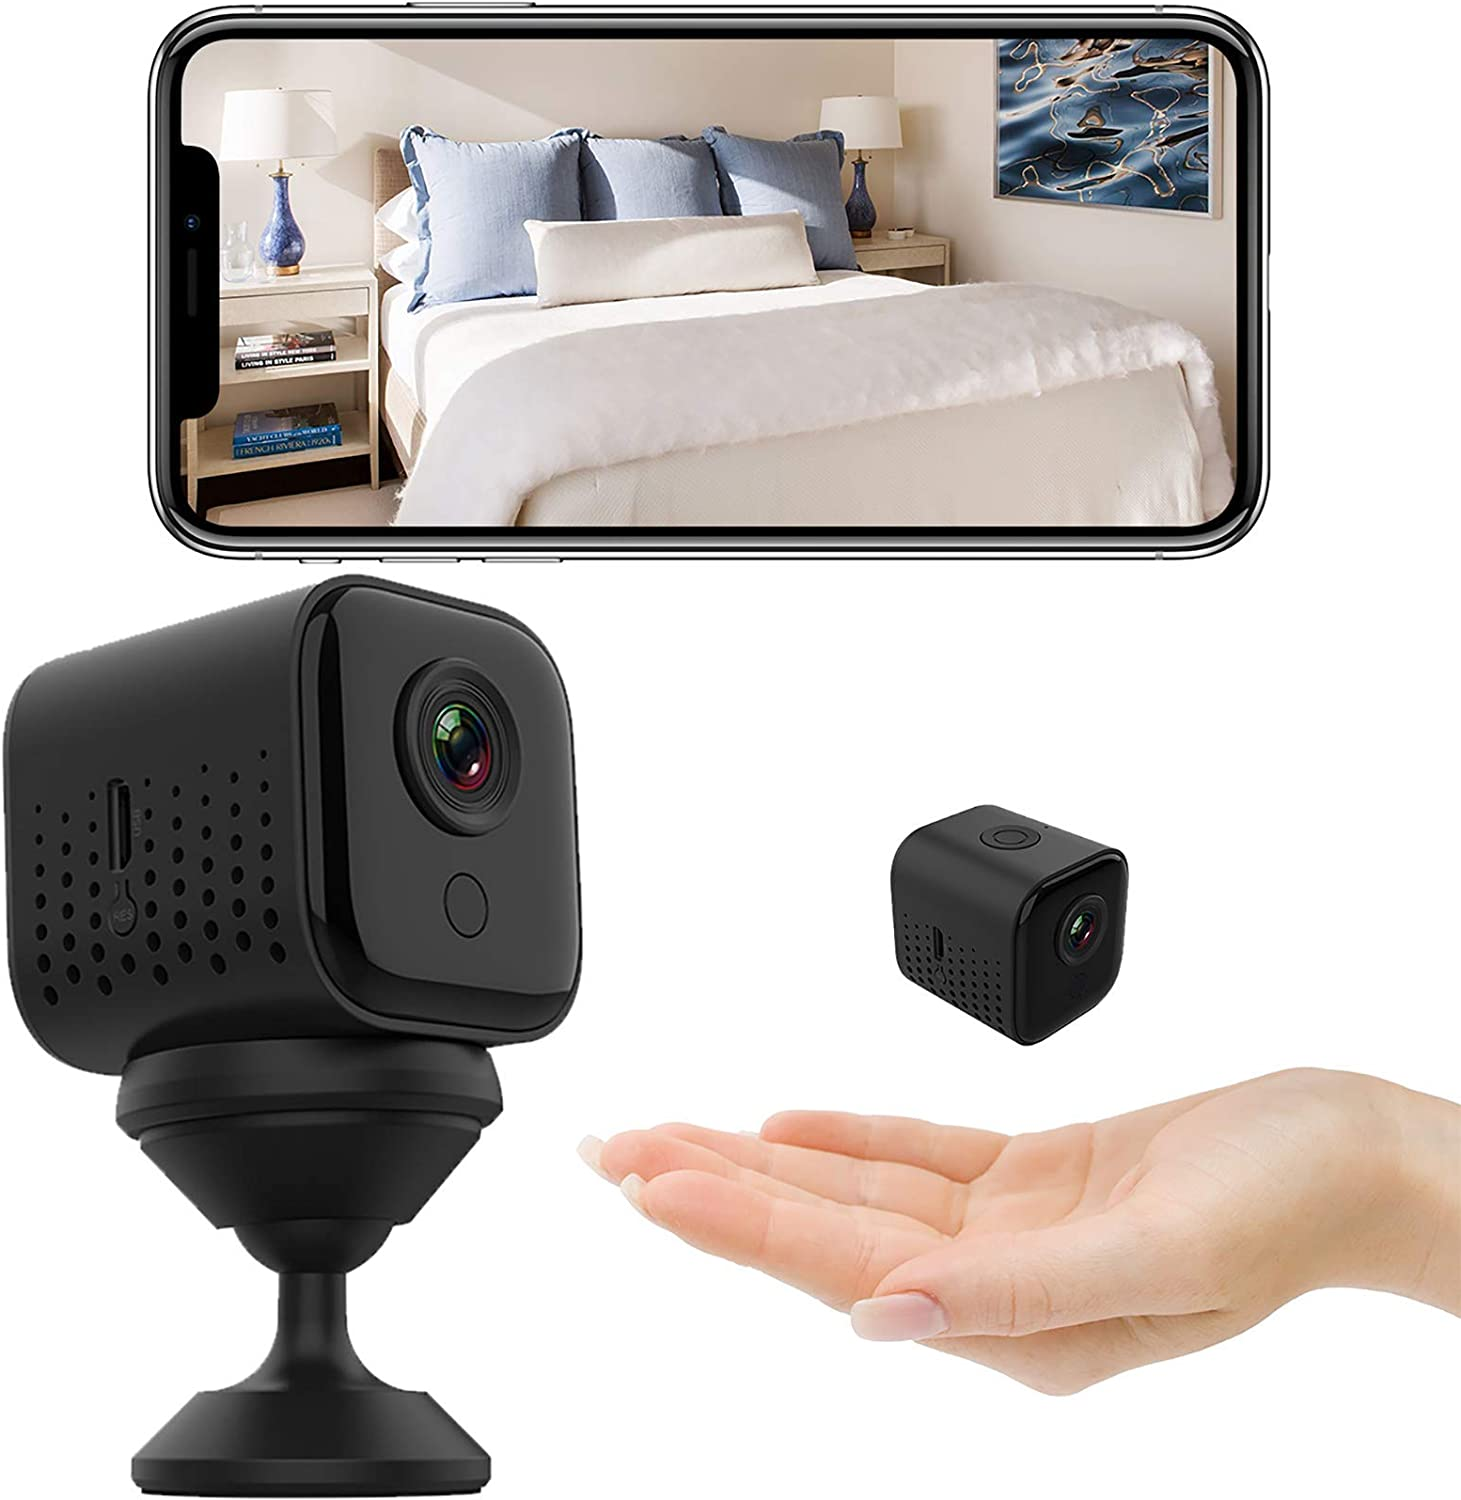 Ophlid Mini WiFi Camera Small Home Security Wireless Camera, Nanny Cam, Super Night Vision, Motion Detection, Crisp 1080P HD, Live Streaming, Indoor & Outdoor Portable Tiny Cam with Android iOS App